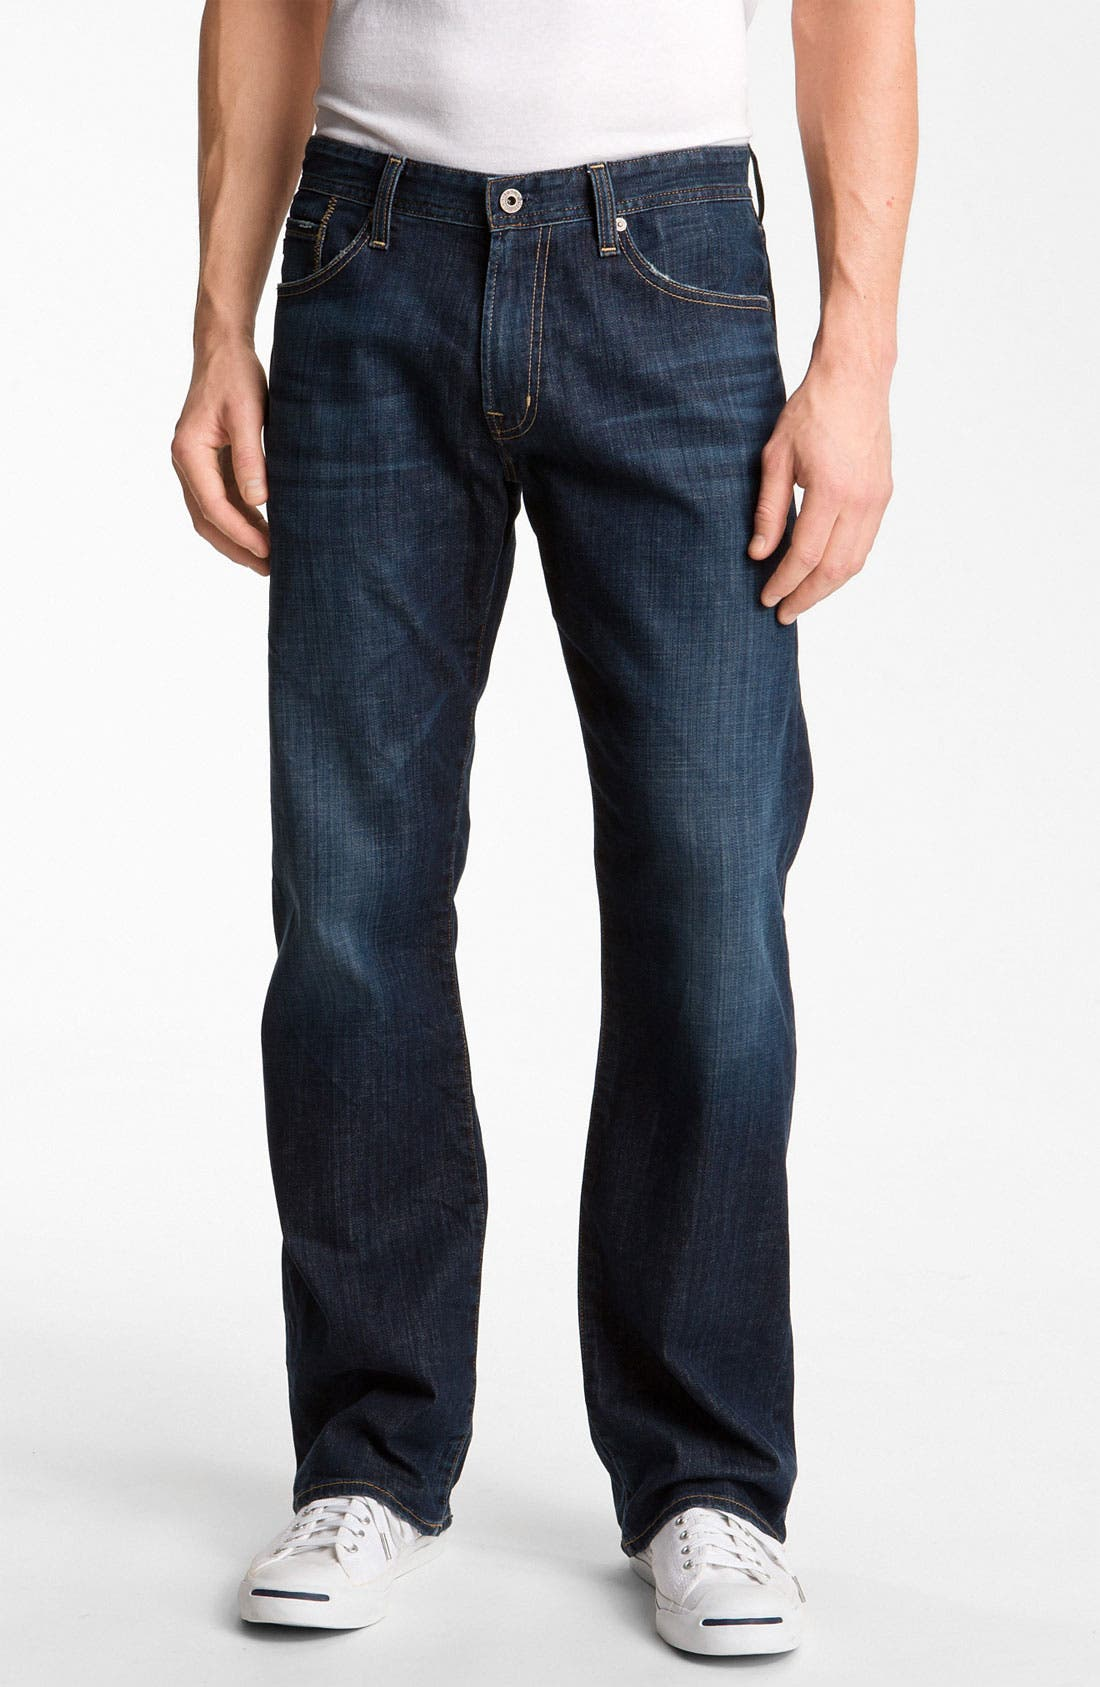 Alternate Image 1 Selected - AG Jeans 'Hero' Relaxed Fit Jeans (Kearney)